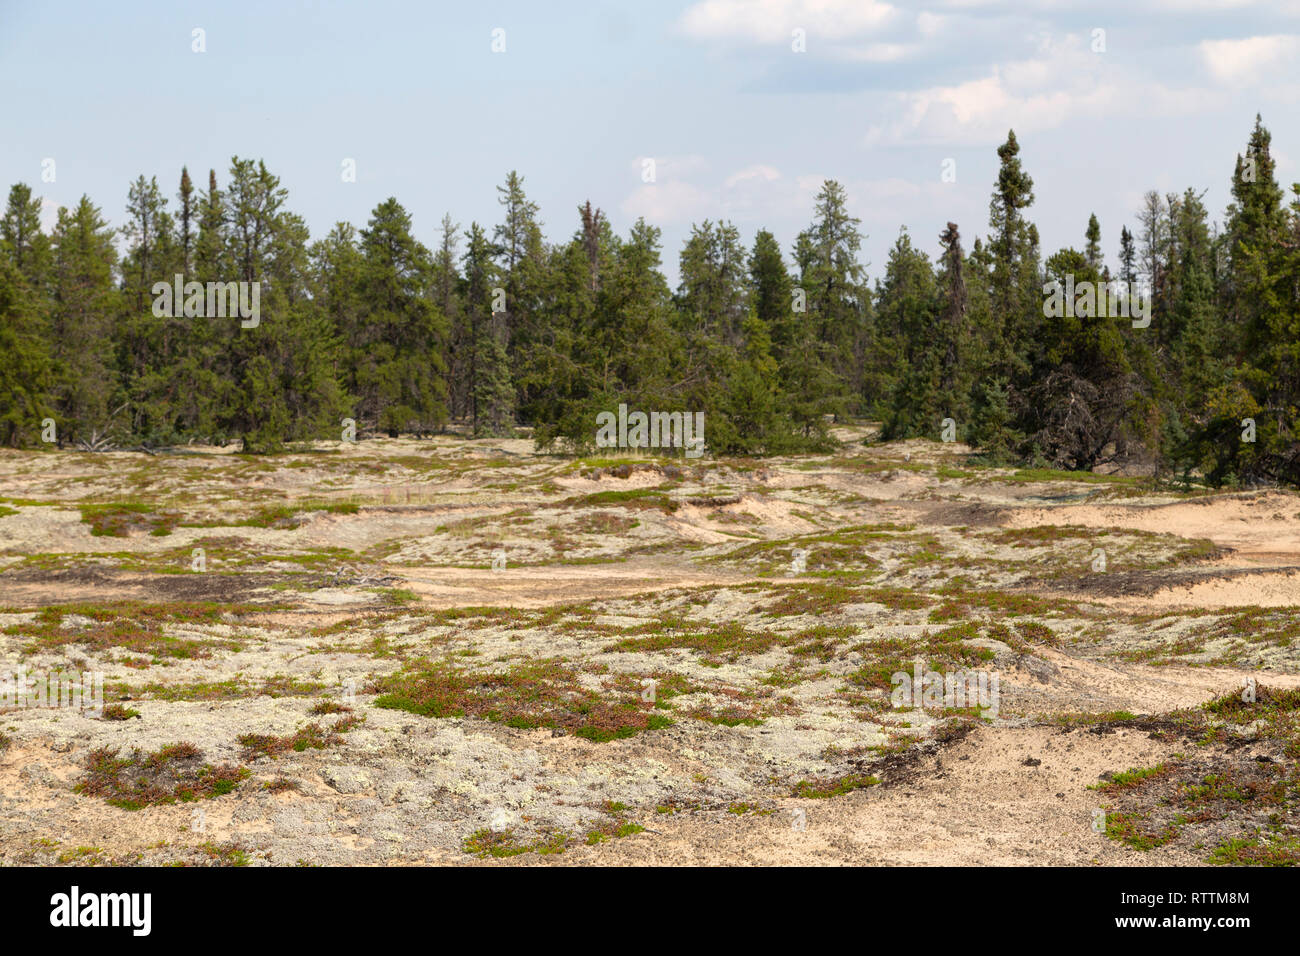 Sandy ground on an esker in northern Manitoba, Canada. The esker was formed by subglacial desposits during the Ice Age. - Stock Image